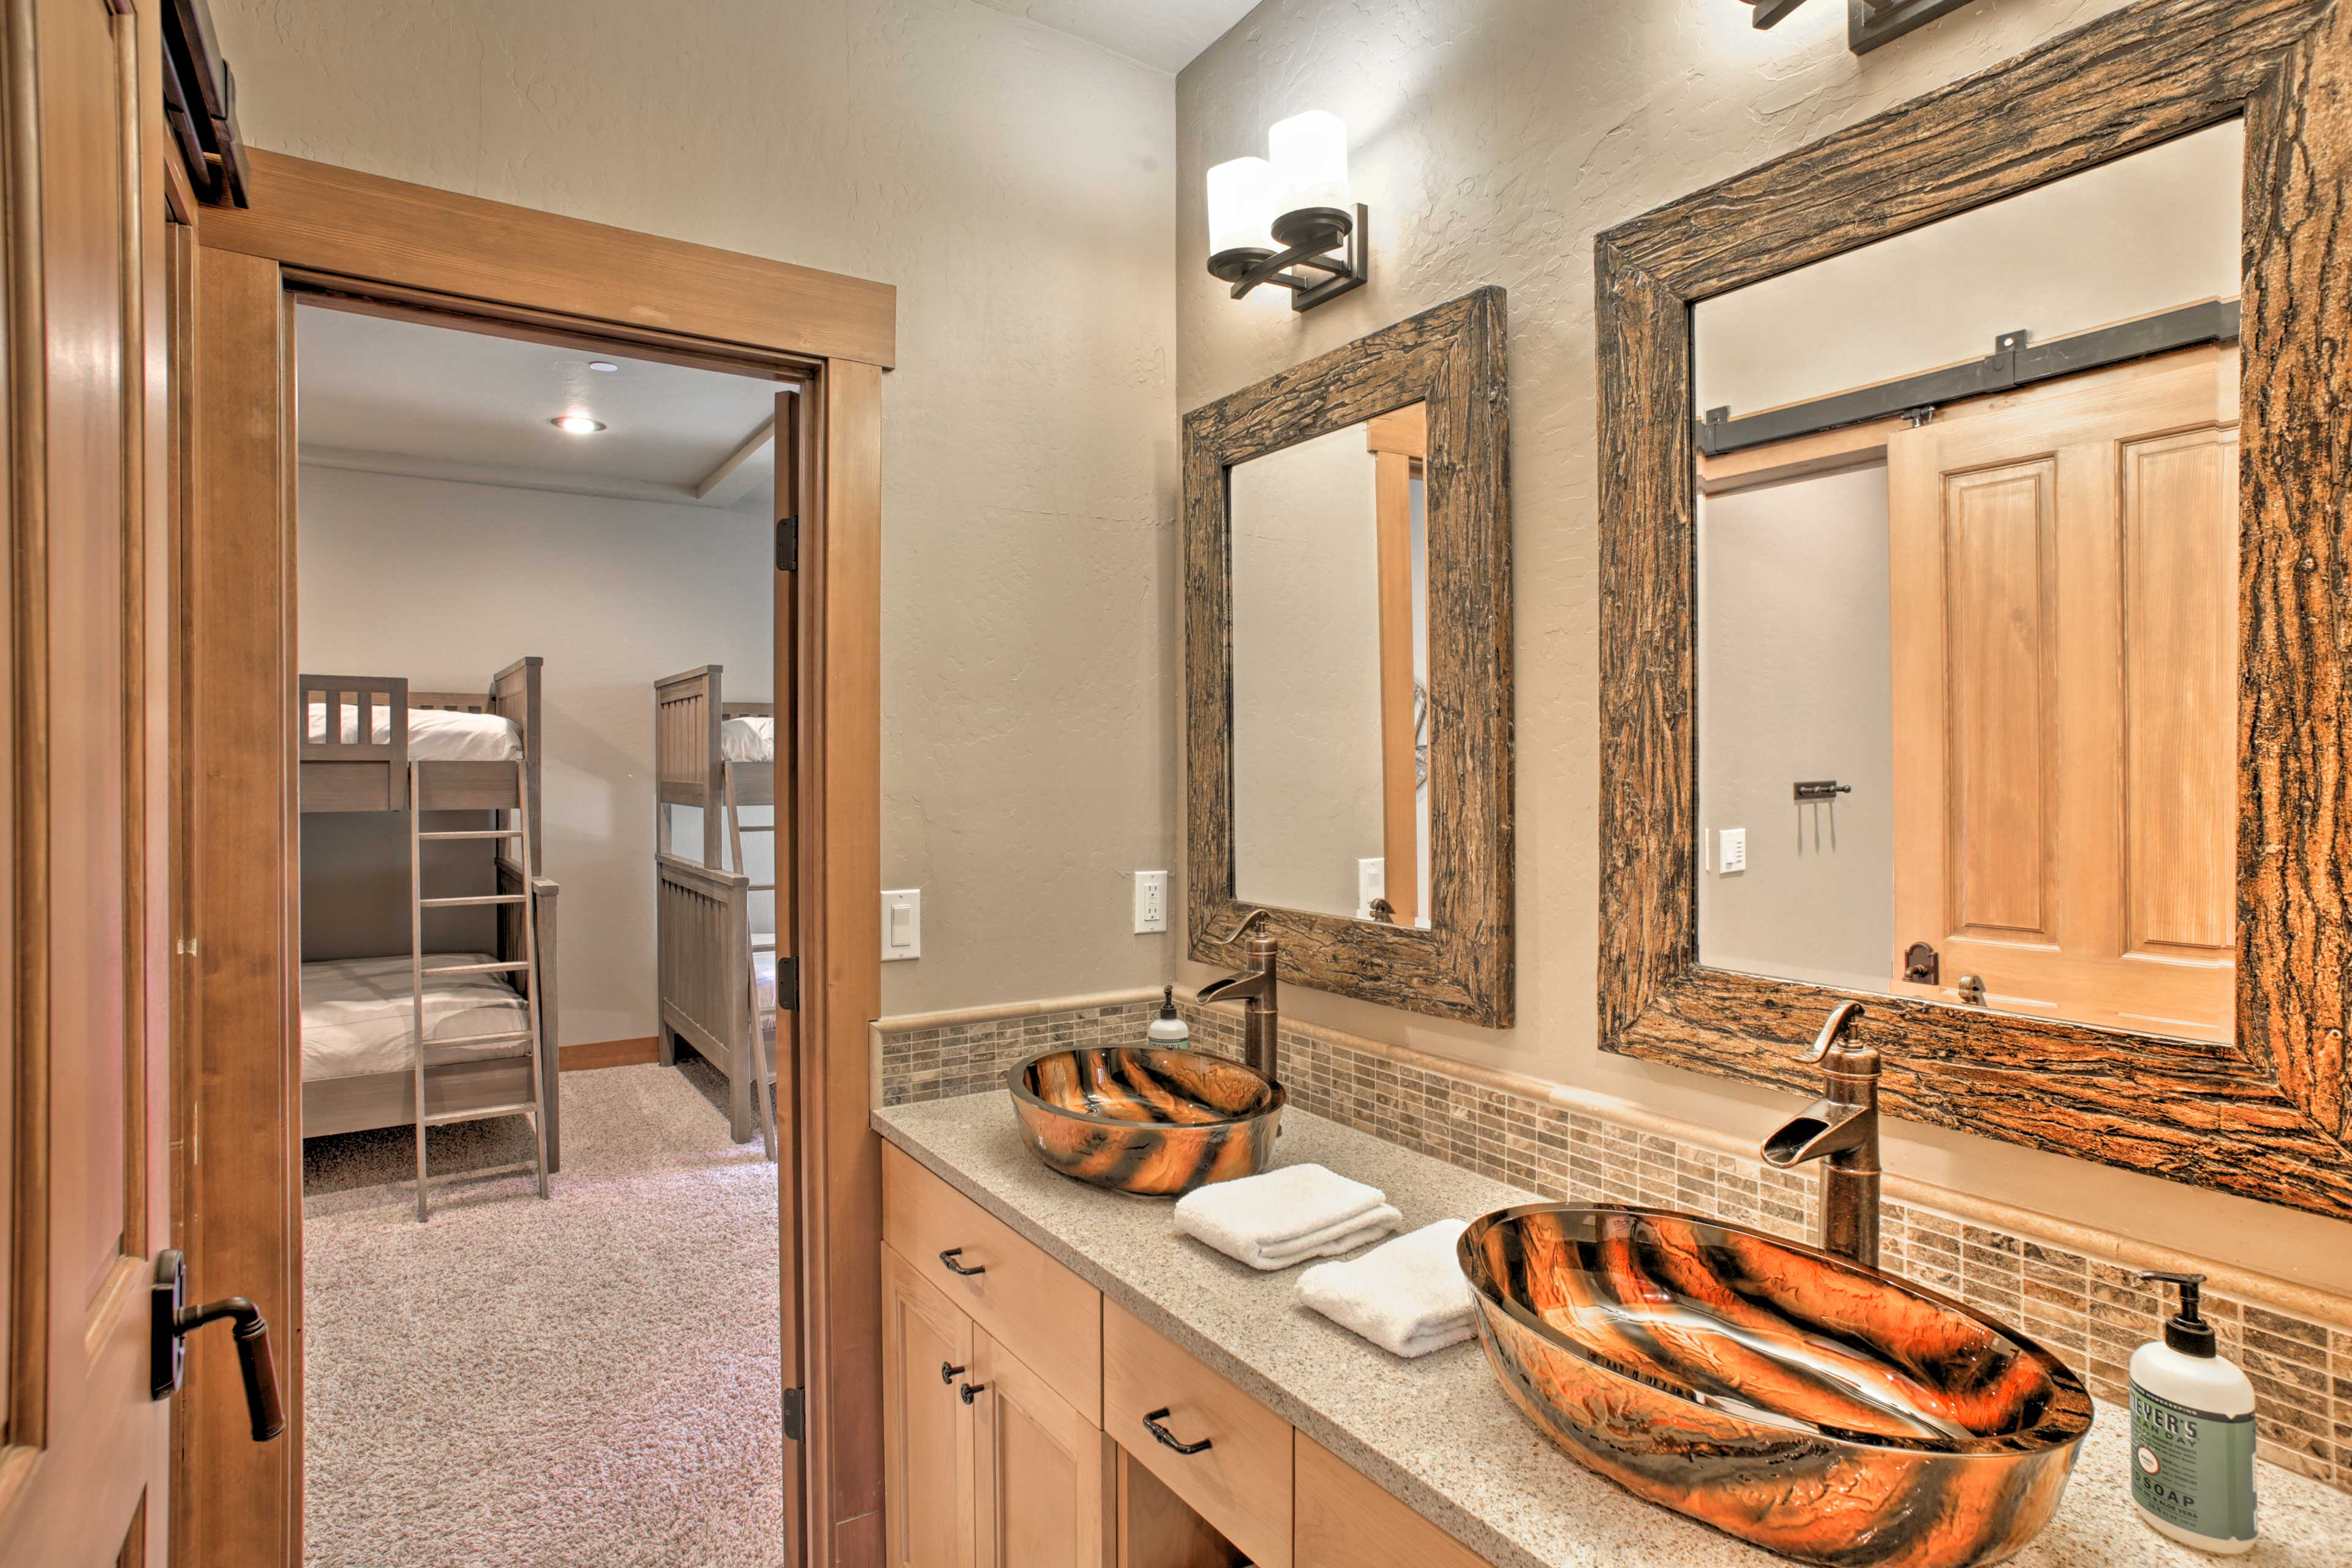 The 2 guest bedrooms share this bath.